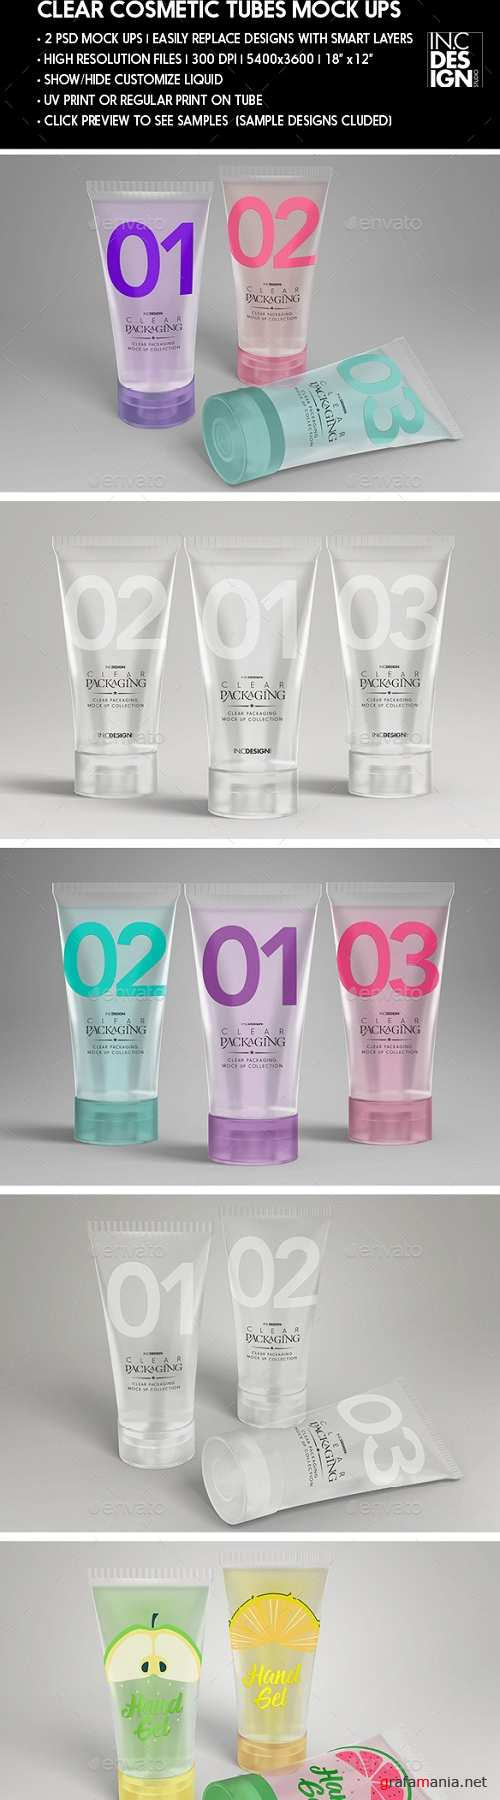 Clear Cosmetic Tube MockUps 20753300